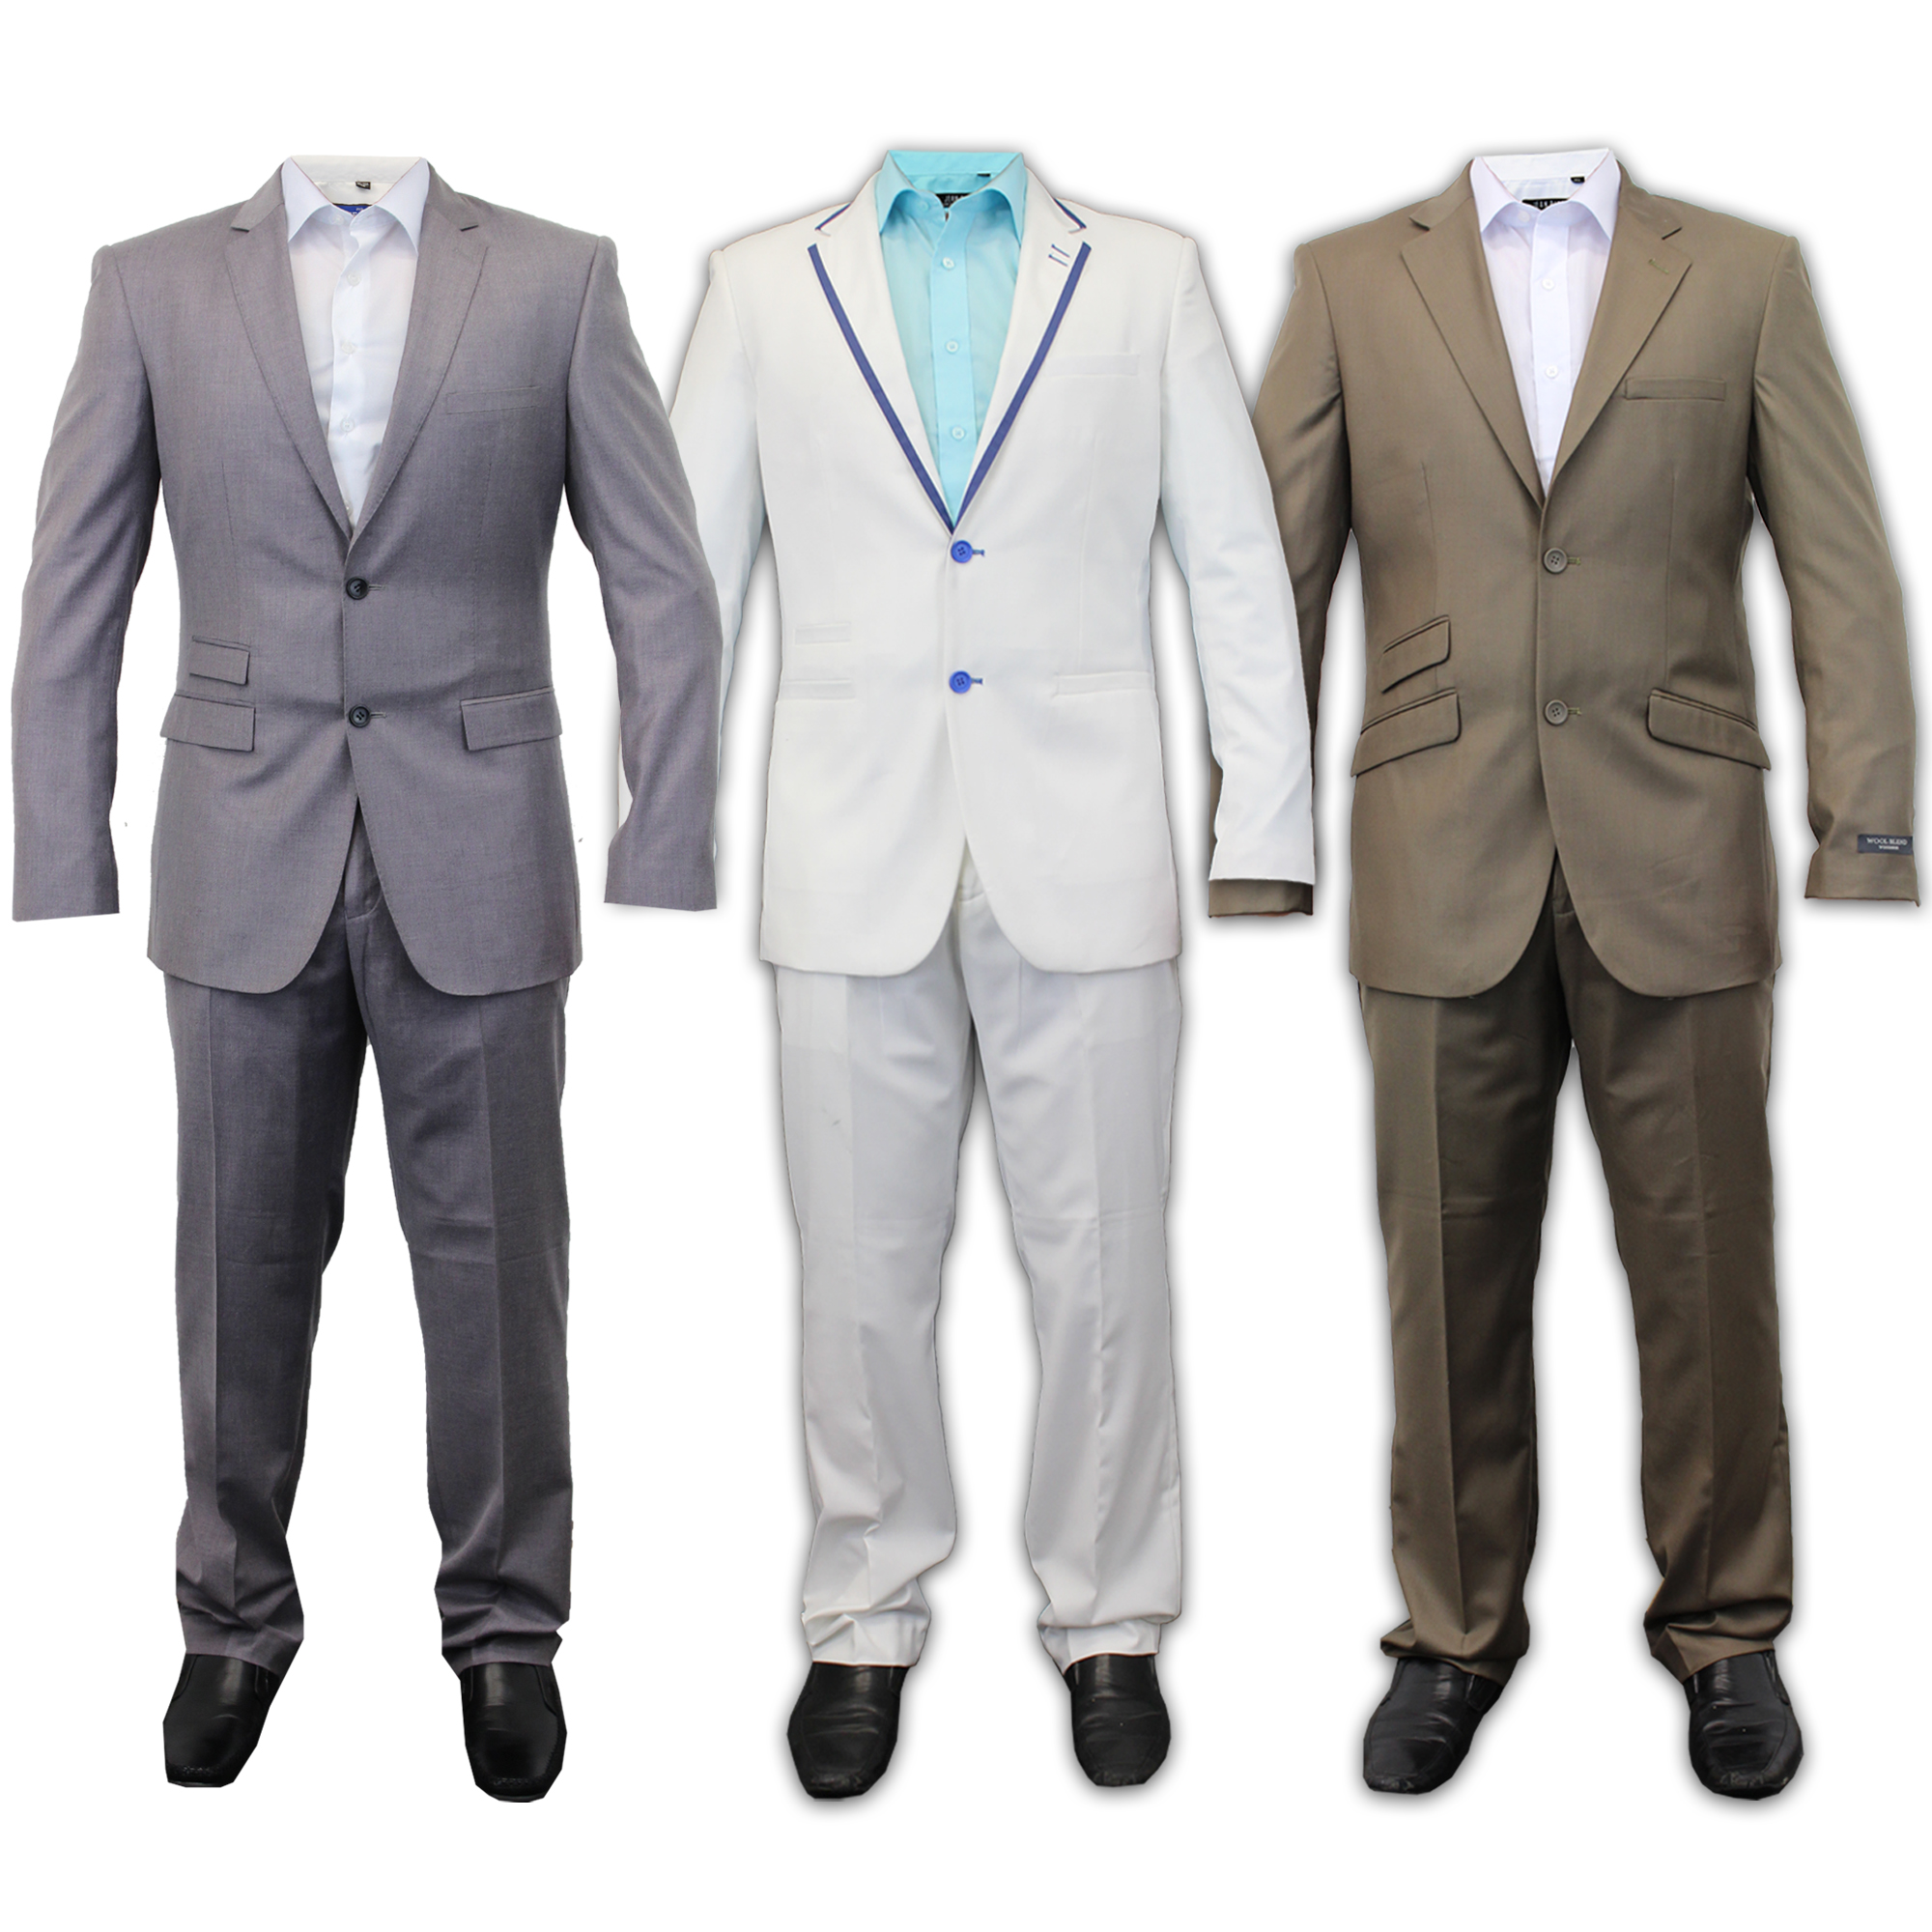 Matching Suit Jacket & Pants at Express. Be stylish and confident in men's suits from Express. Shop extra slim, slim and classic fit men's suits in black, navy, gray & more.